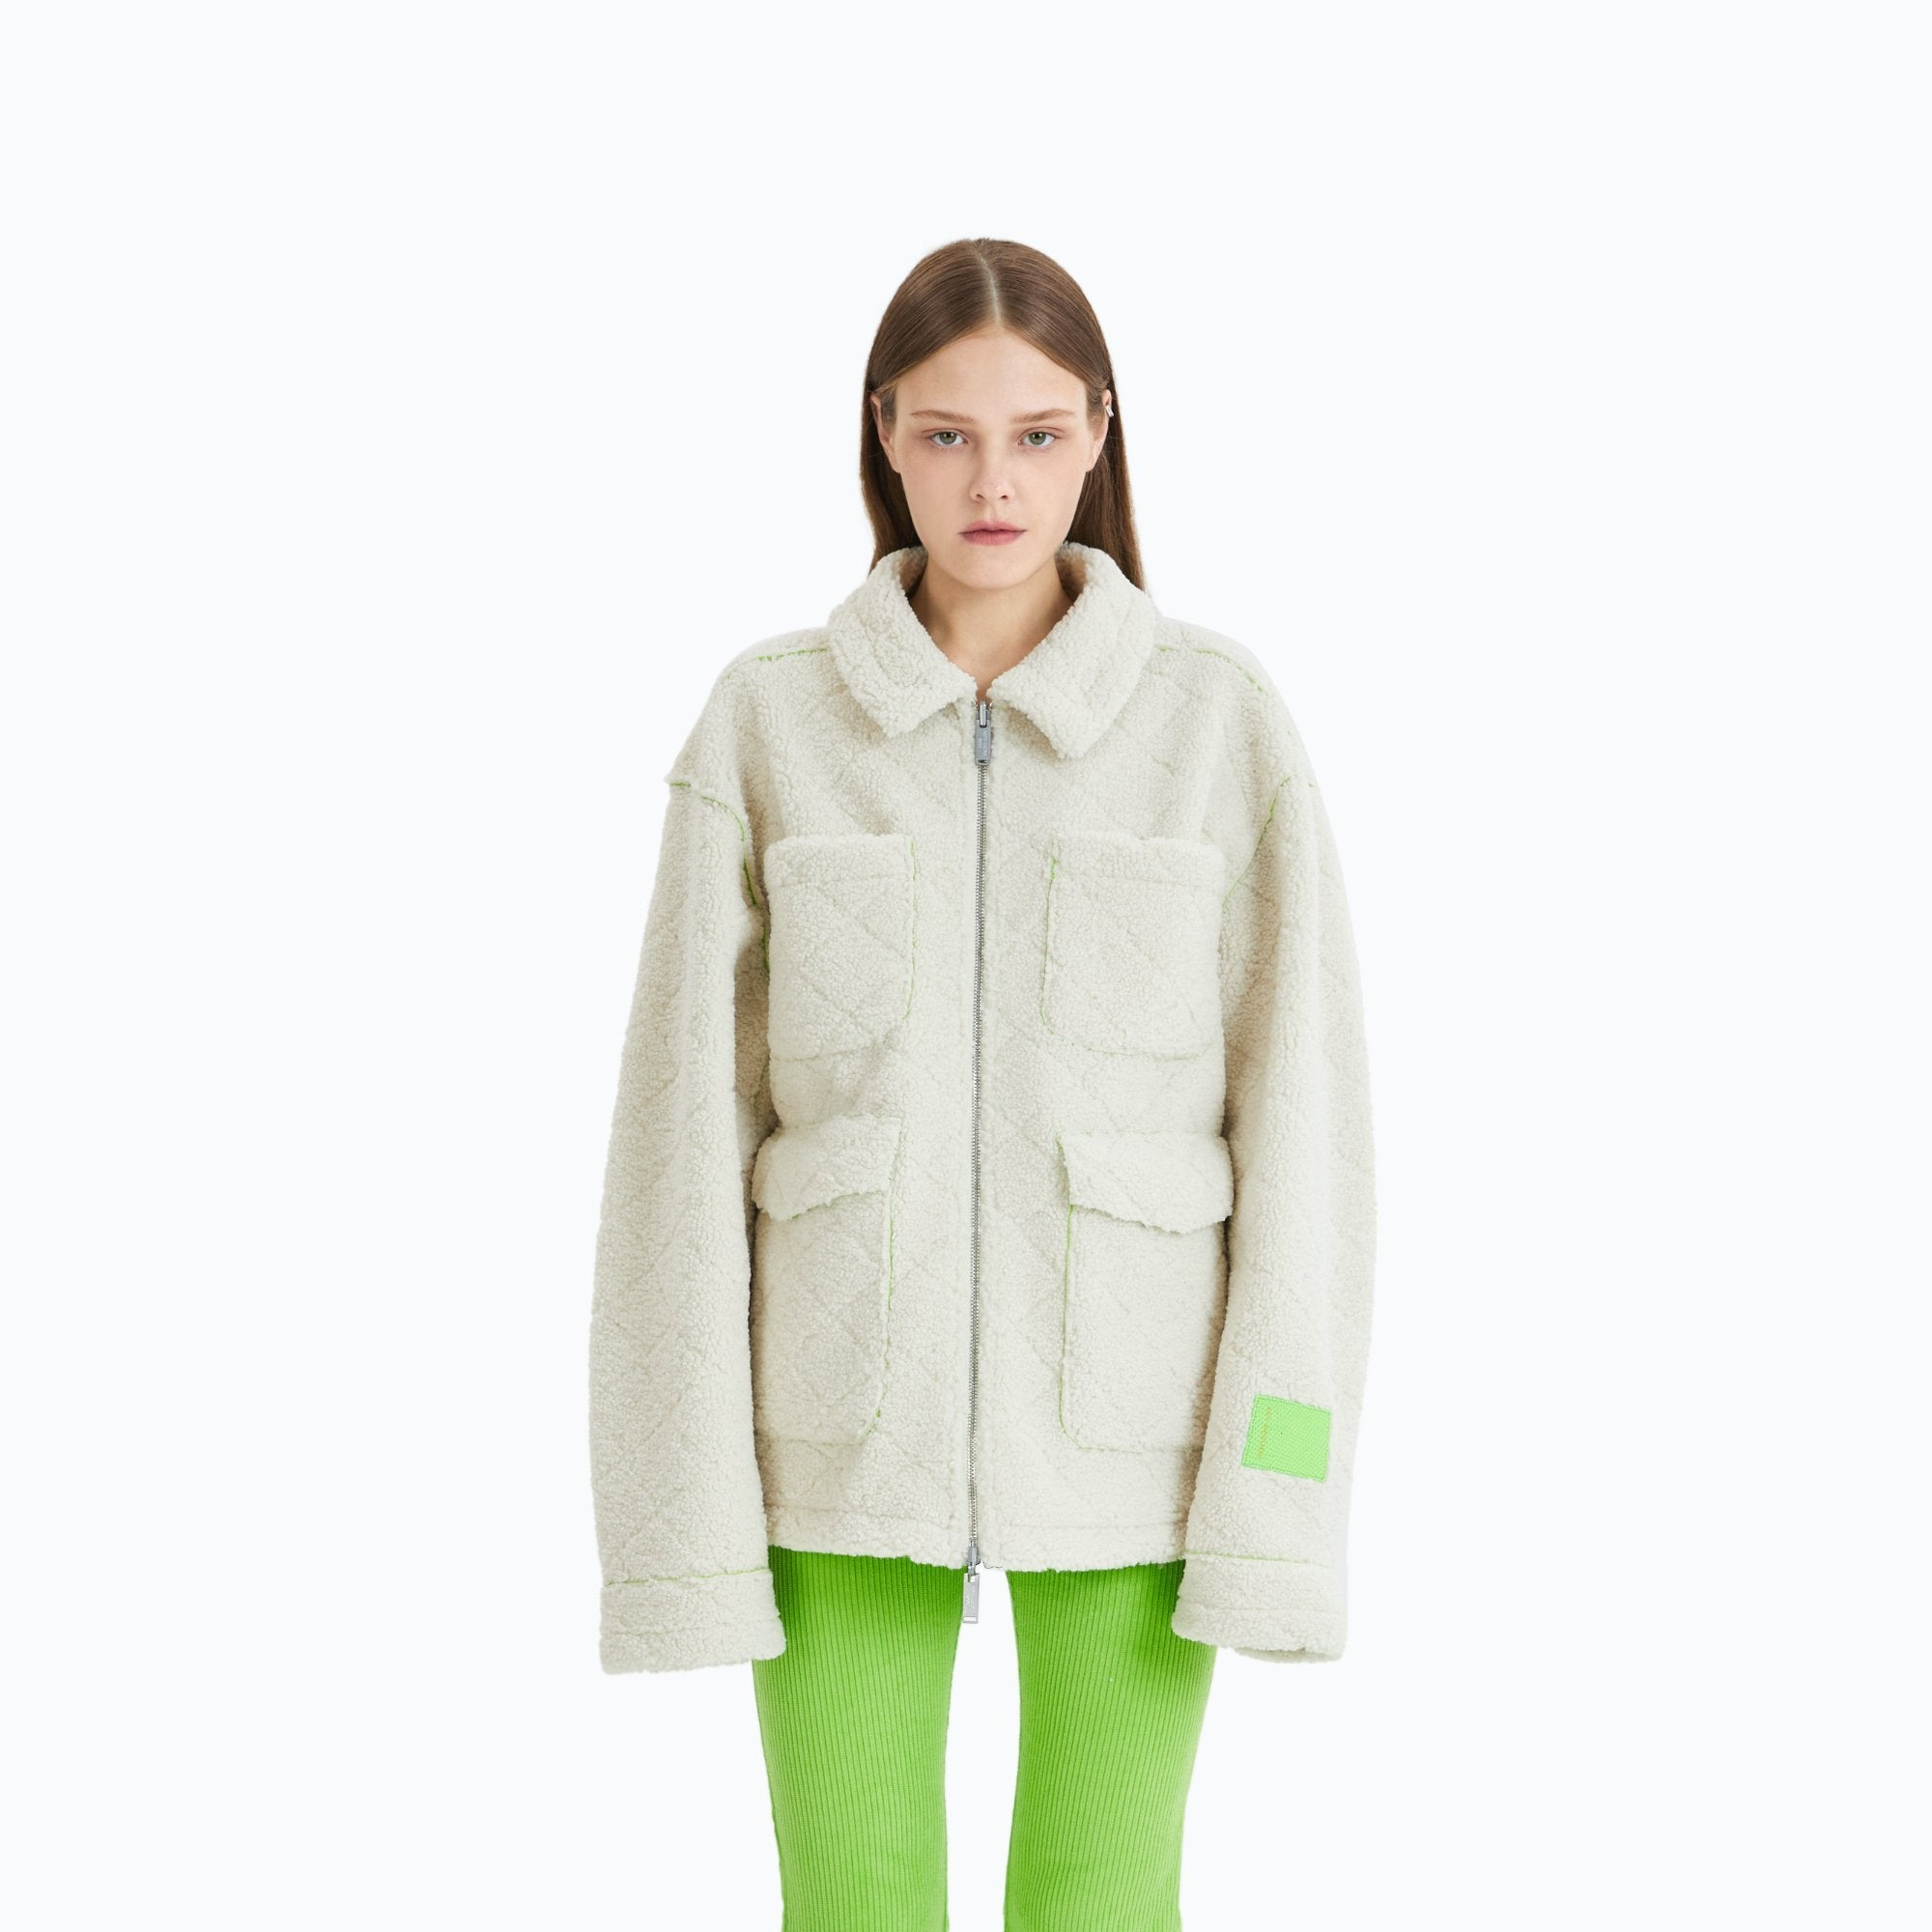 ANN ANDELMAN Double-Sided Wool Jacket White | MADA IN CHINA